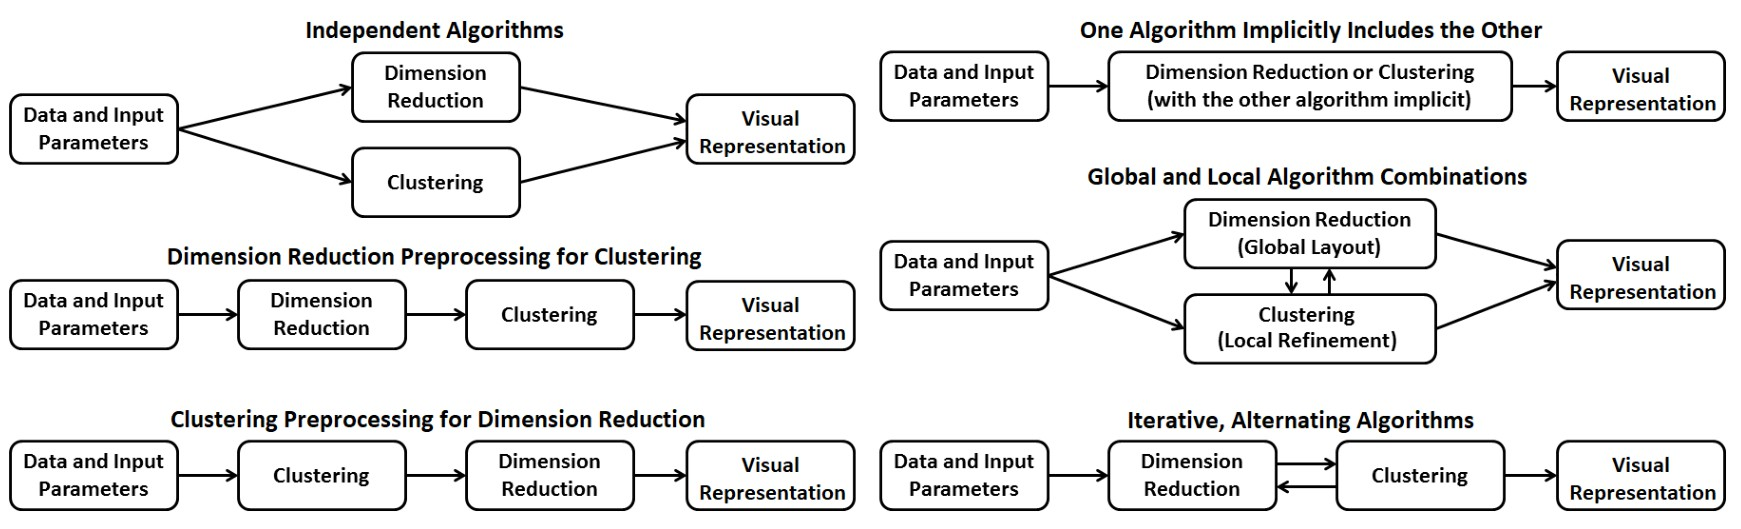 Towards a Systematic Combination of Dimension Reduction and Clustering in Visual Analytics(可视分析中降维和聚类的系统组合)